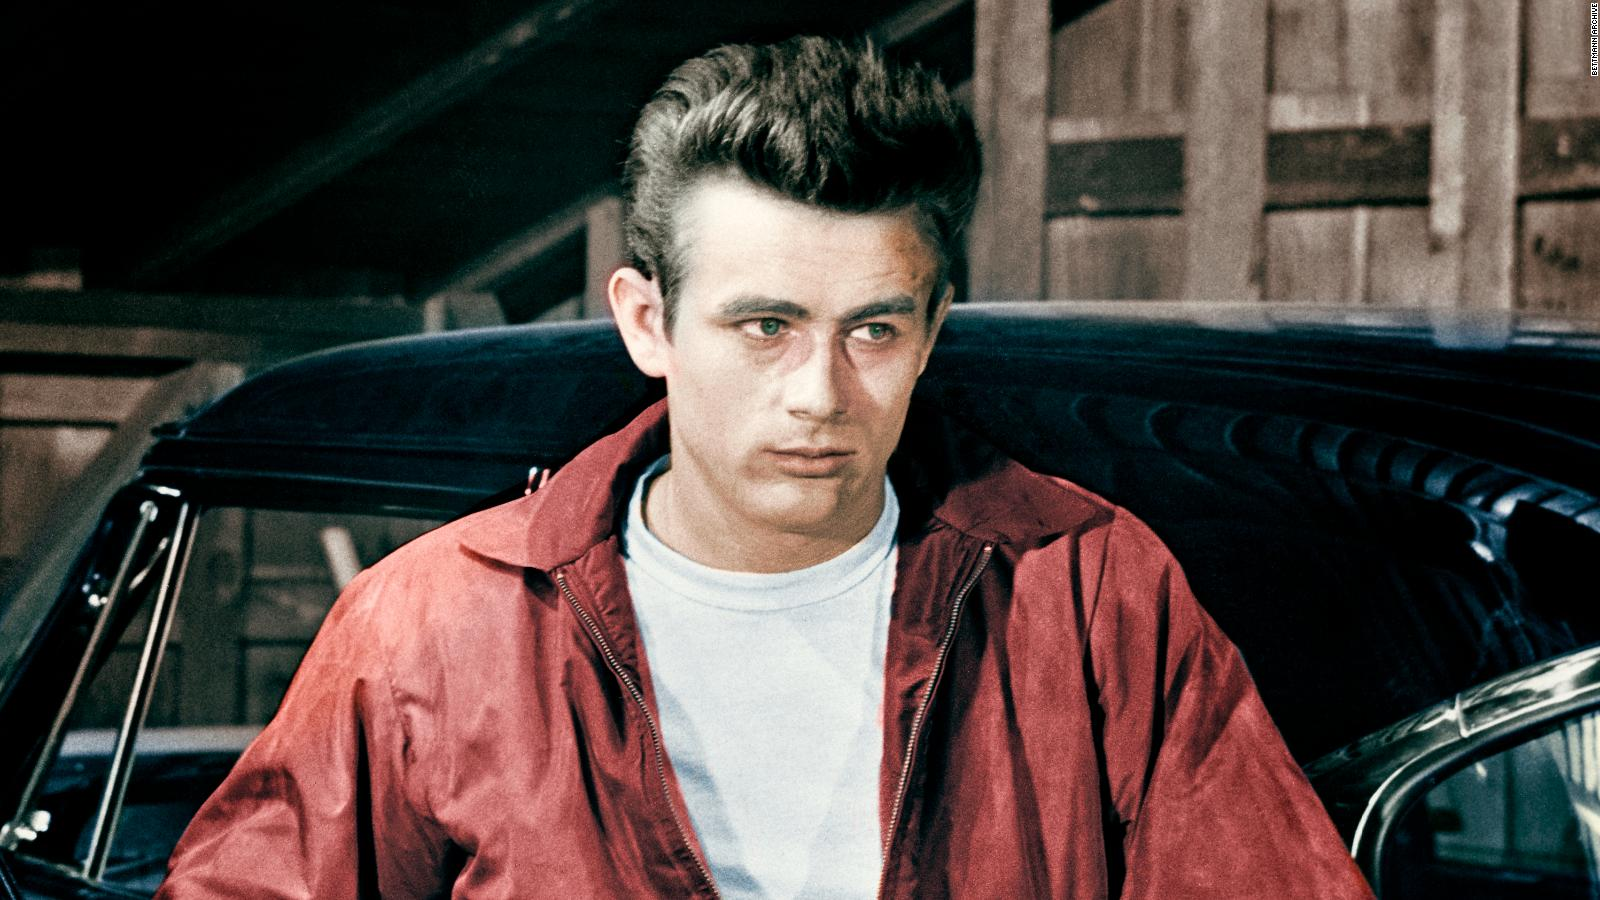 191015115747-james-dean-rebel-page-top-restricted-full-169.jpg